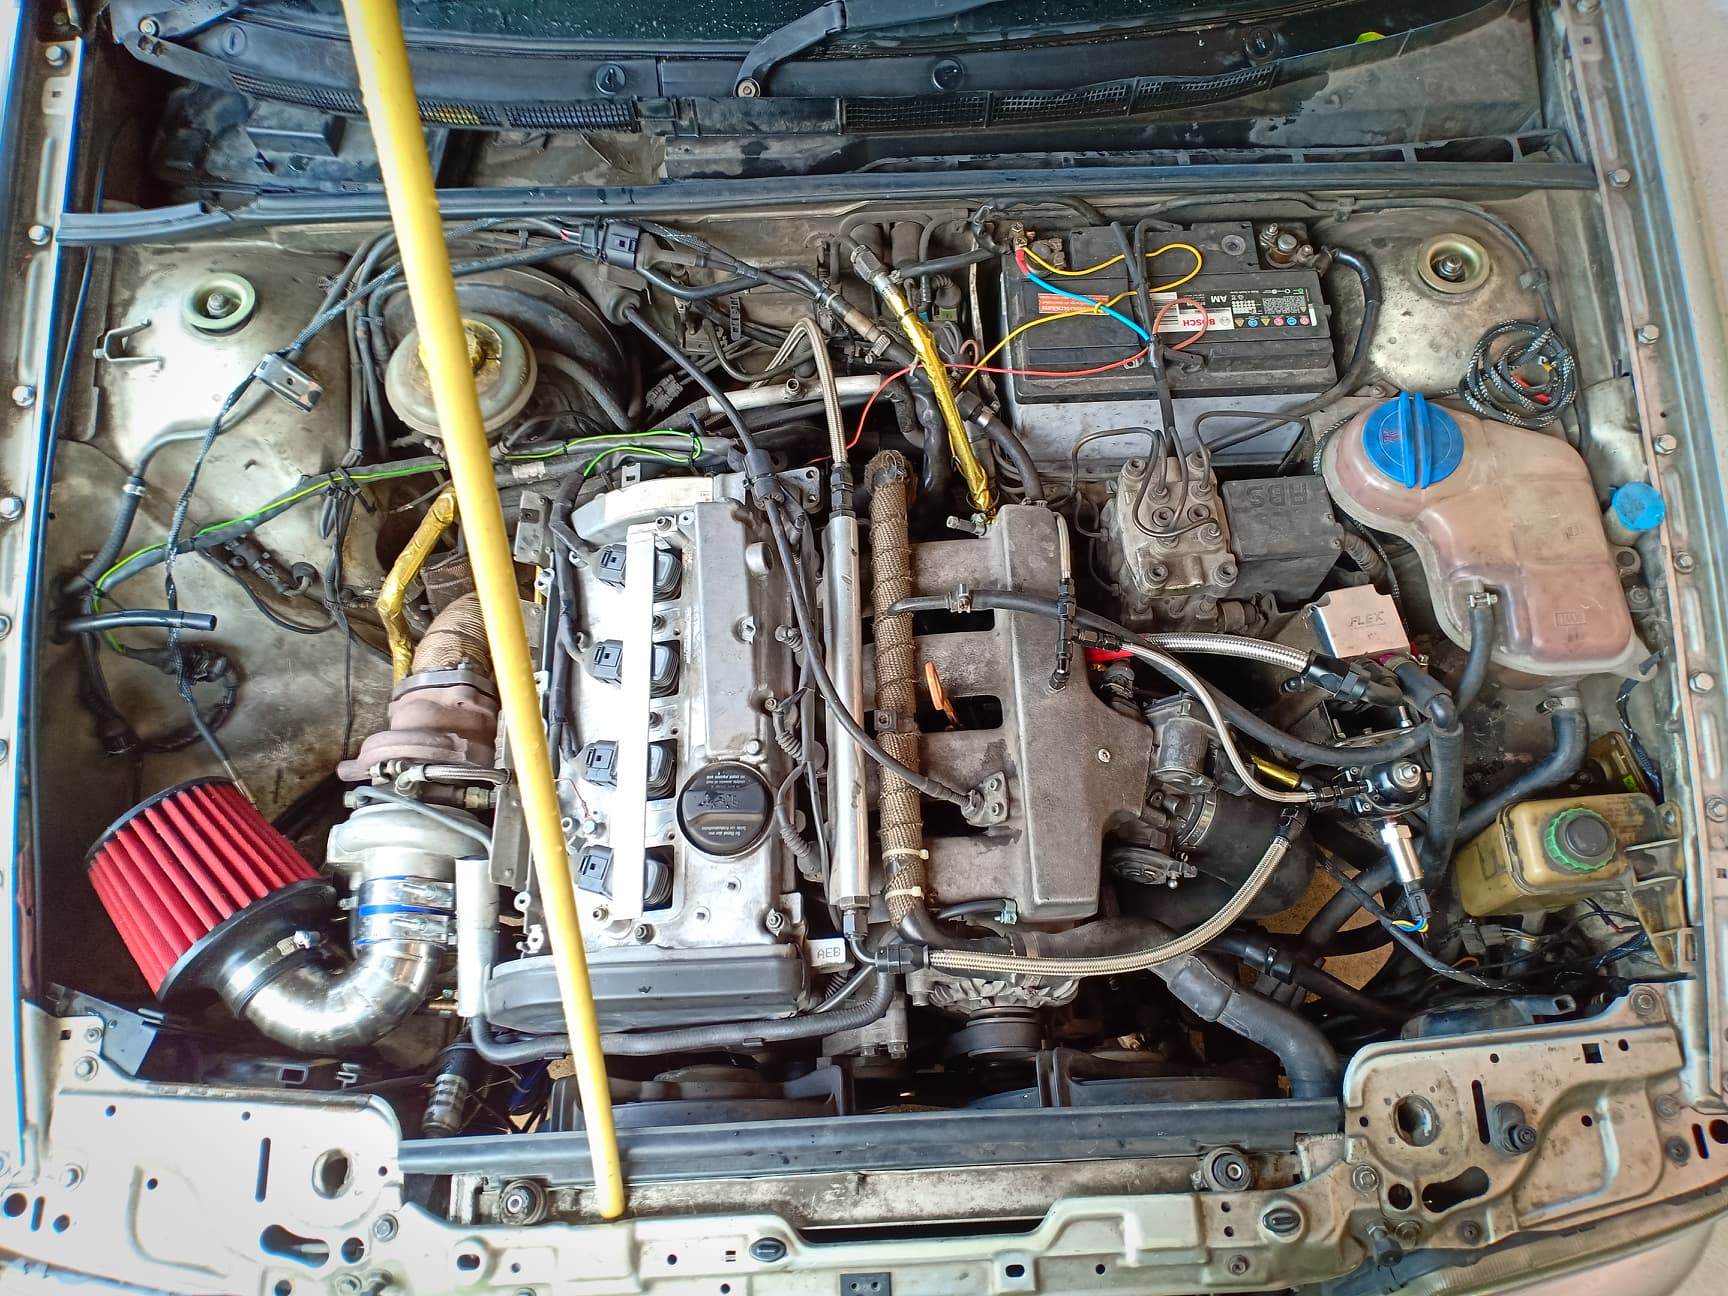 2019 04 08 Engine bay.jpg